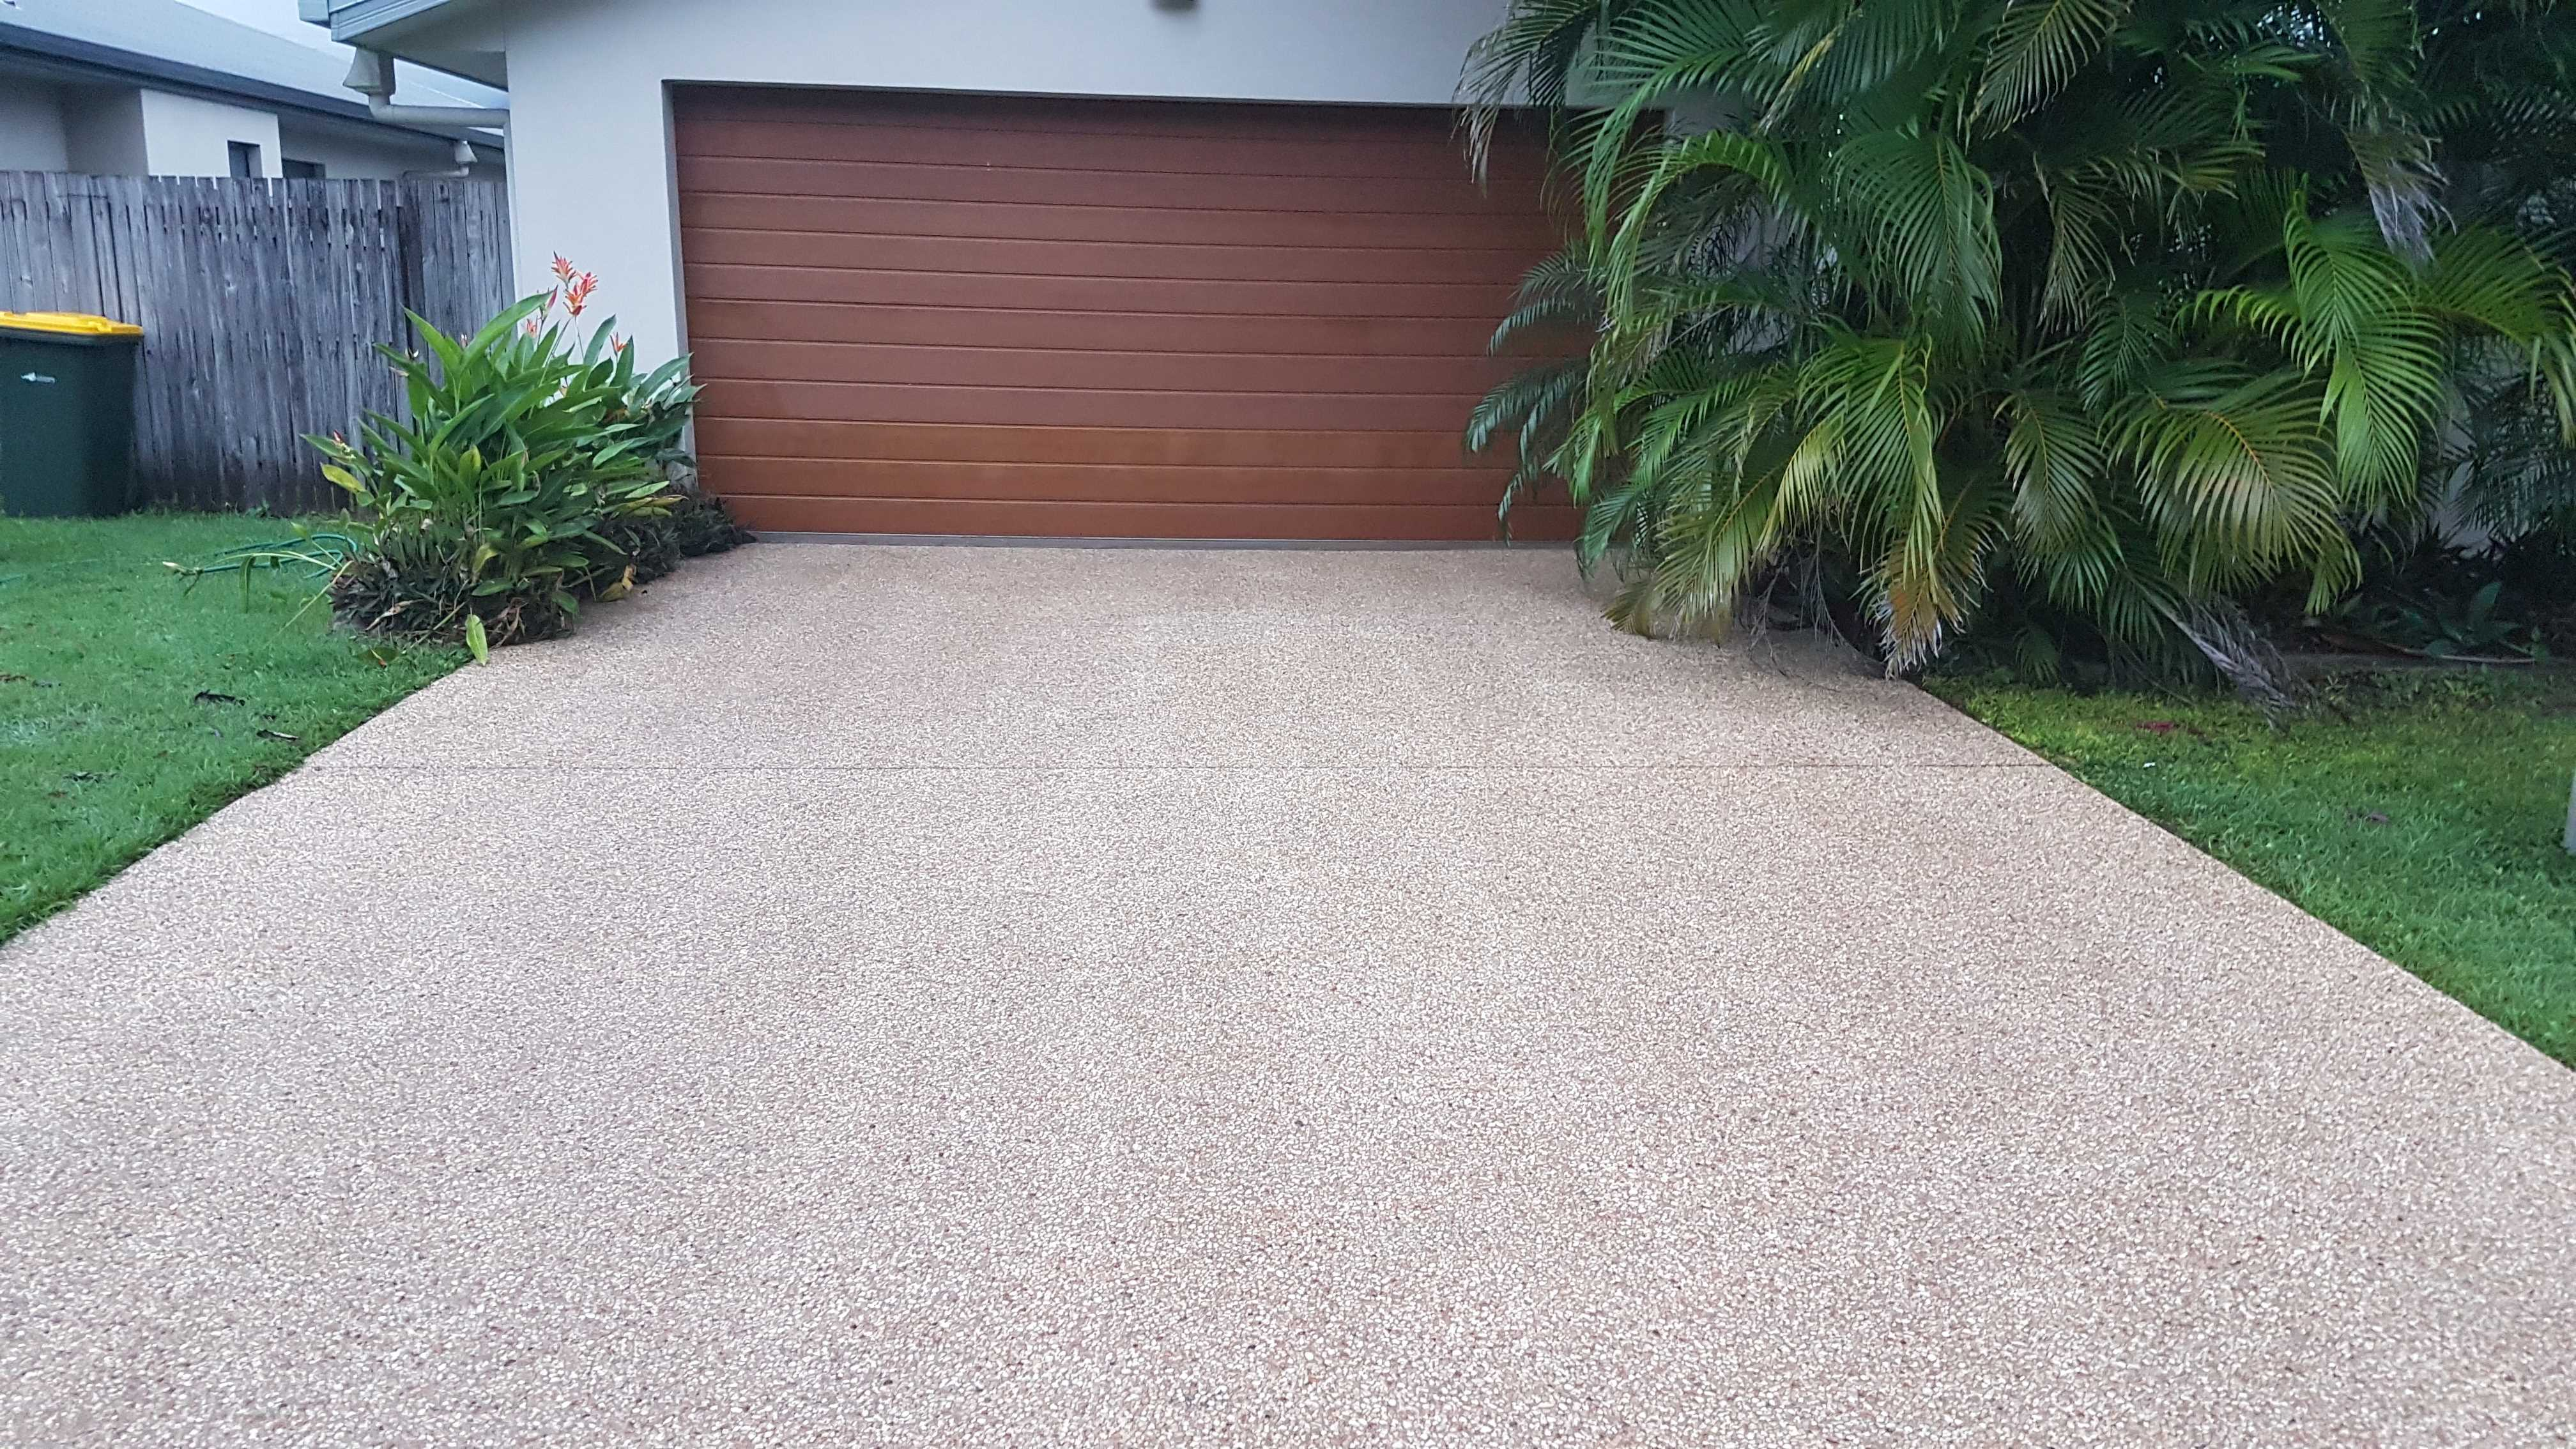 Stay Green Lawn Care - Pressure Washing (48)